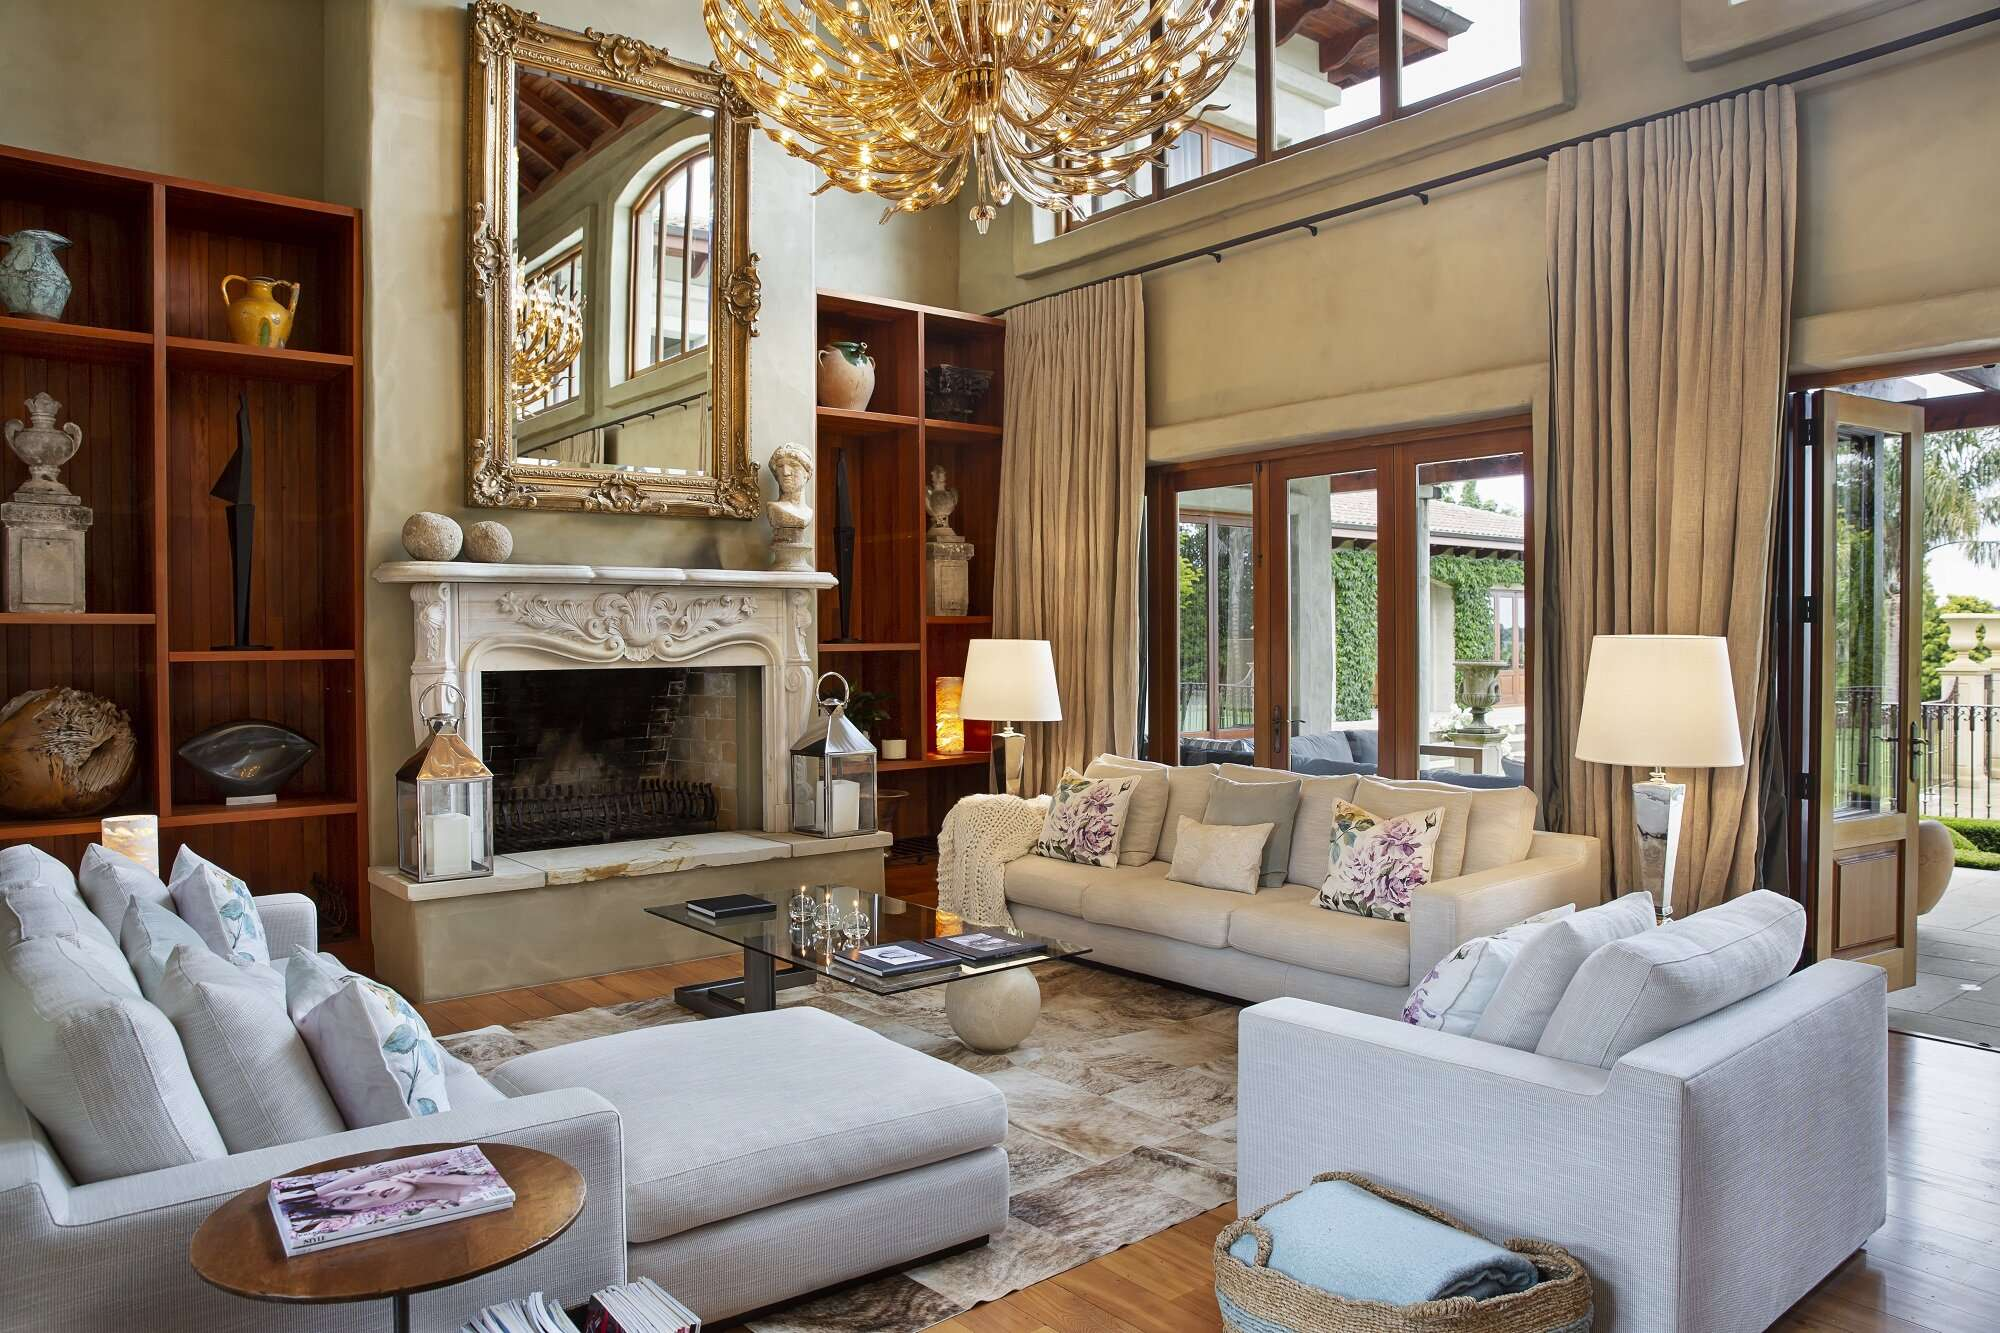 venetian decor in the lounge at Ataahua Lodge, with high ceilings and elegant chandelier